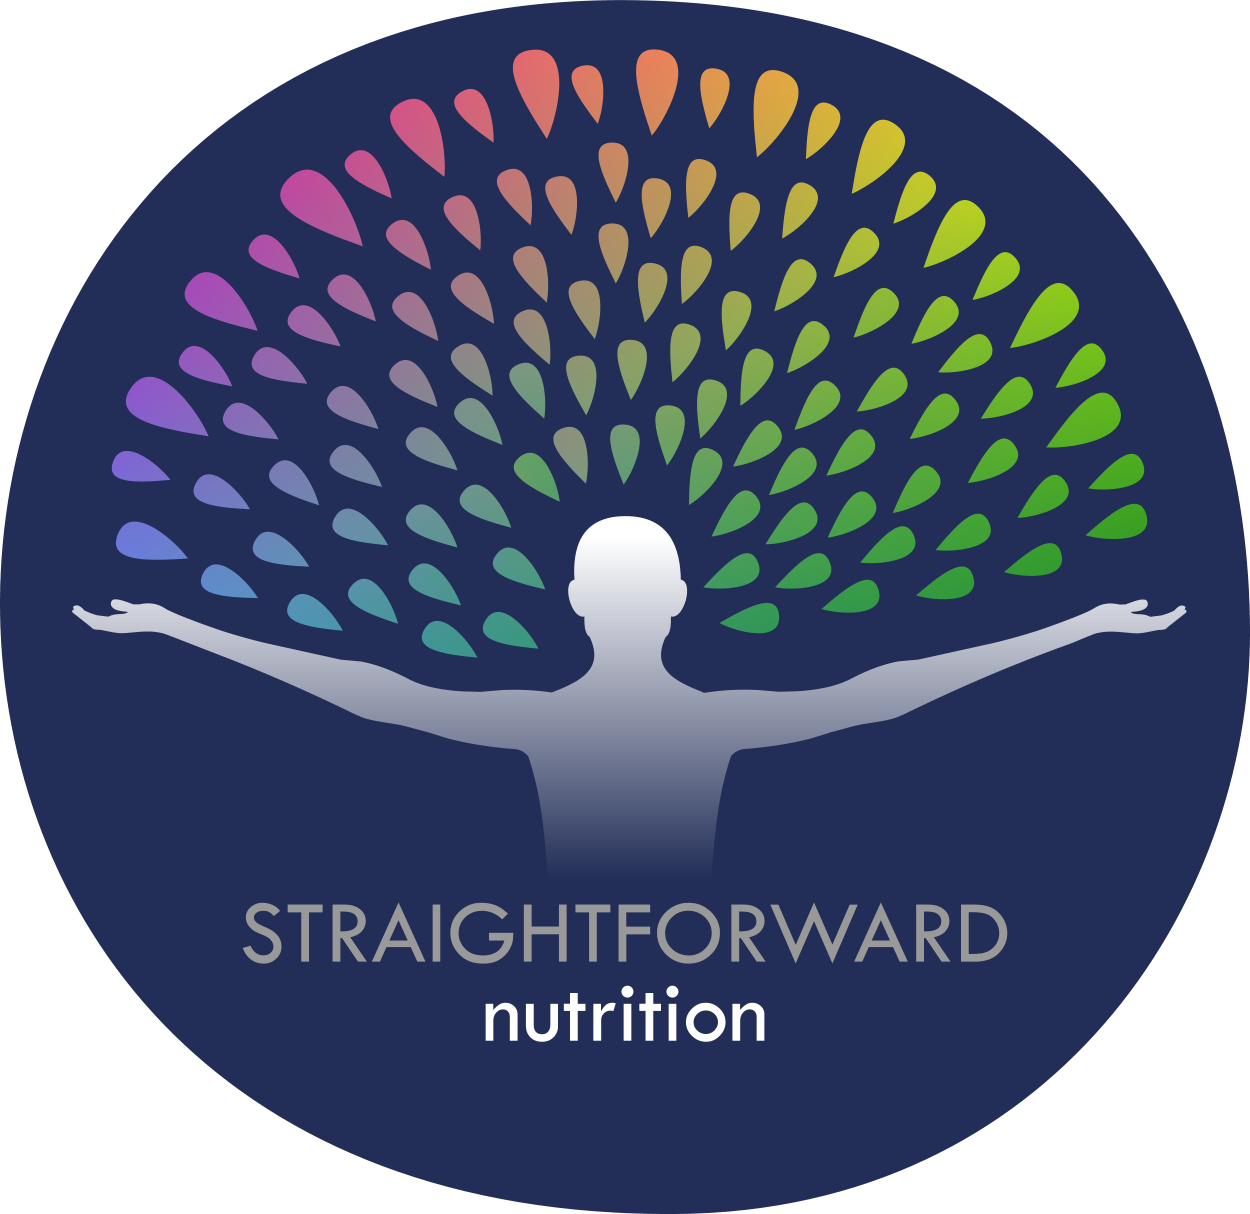 Linn Thorstensson - Straight Forward Nutrition